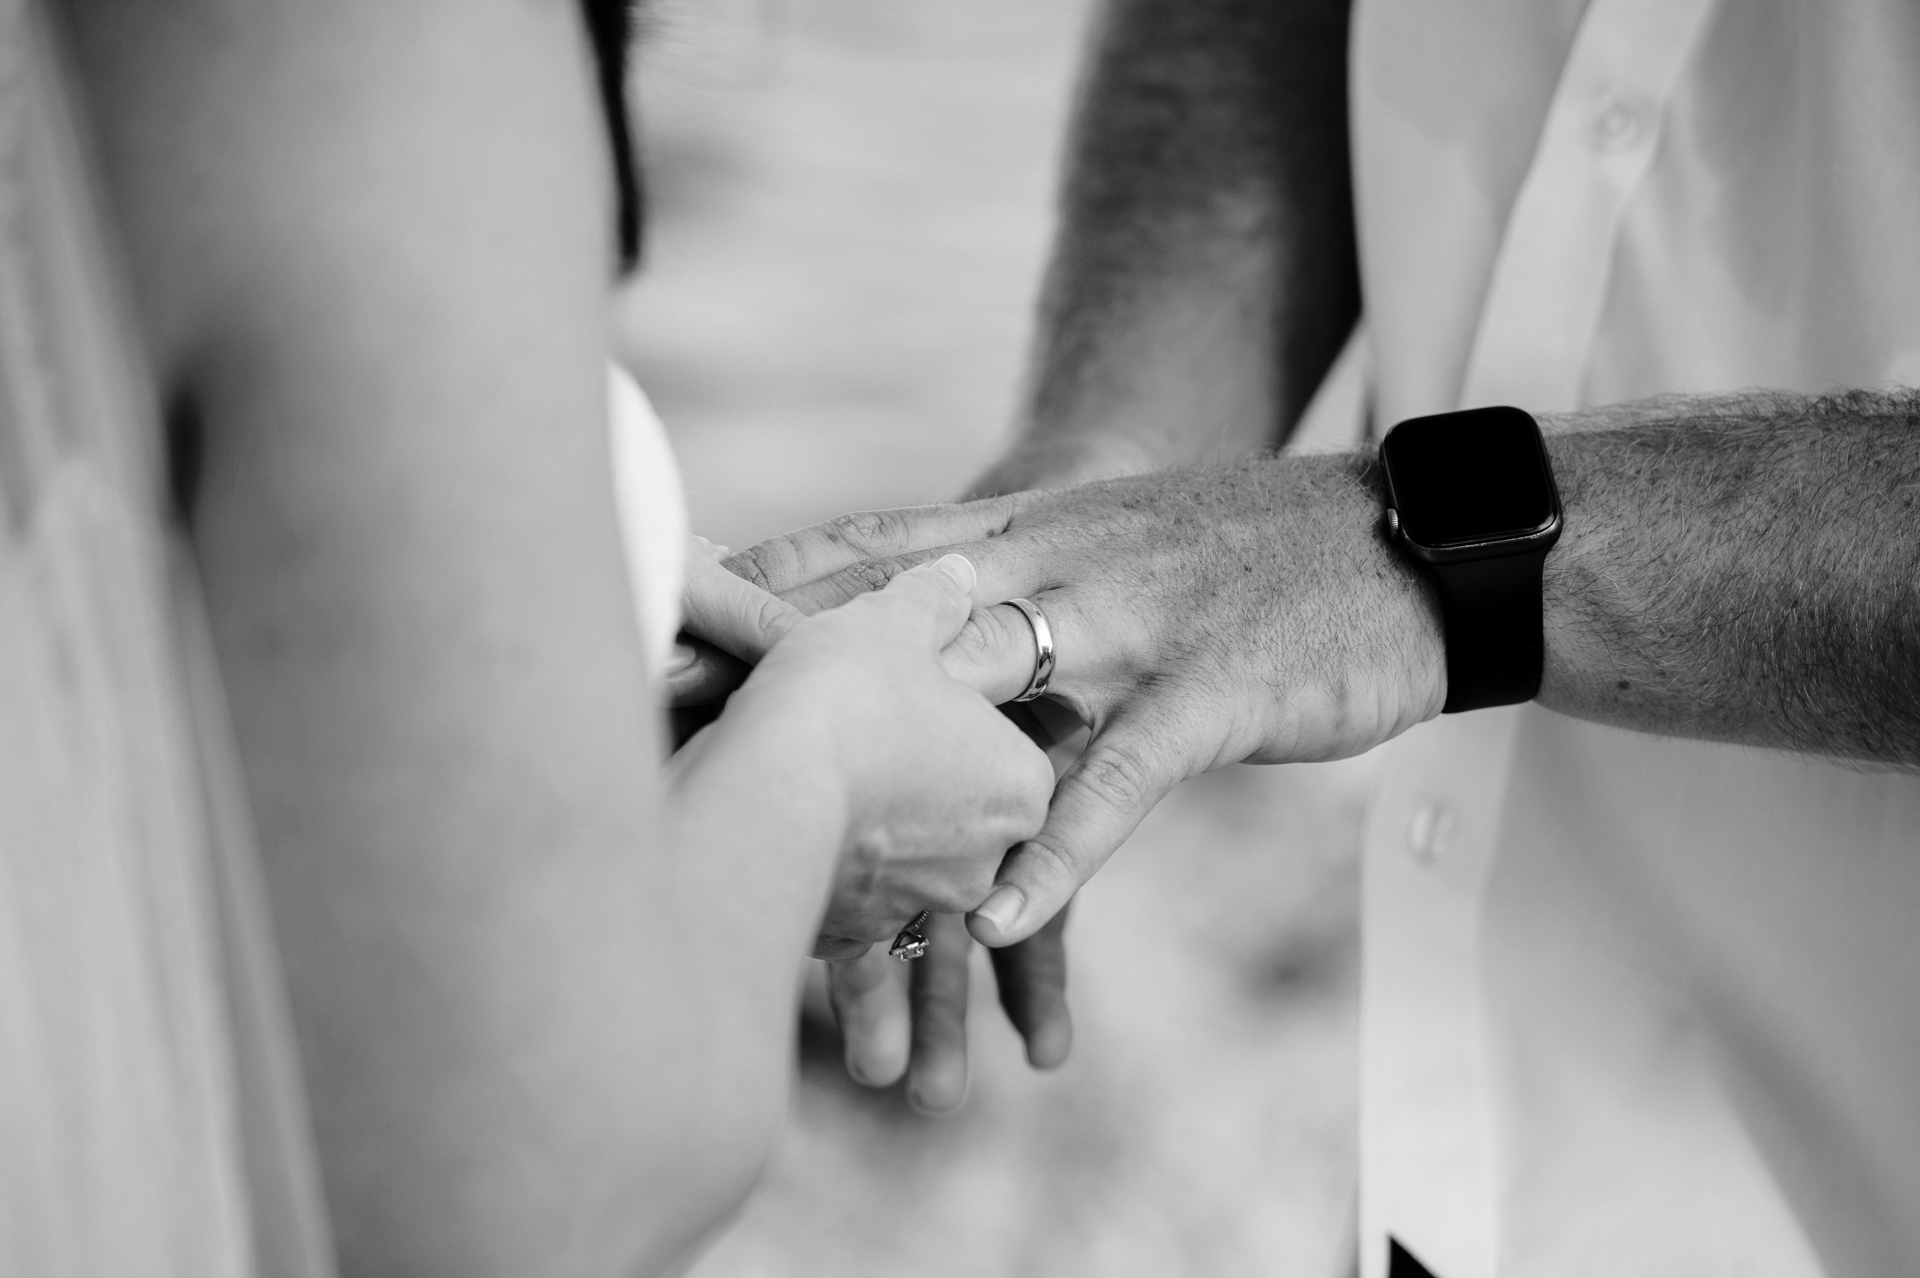 Beach Elopement Detail Image - Ring Ceremony in Florida Keys | The bride slips her husband's wedding band onto his ring finger